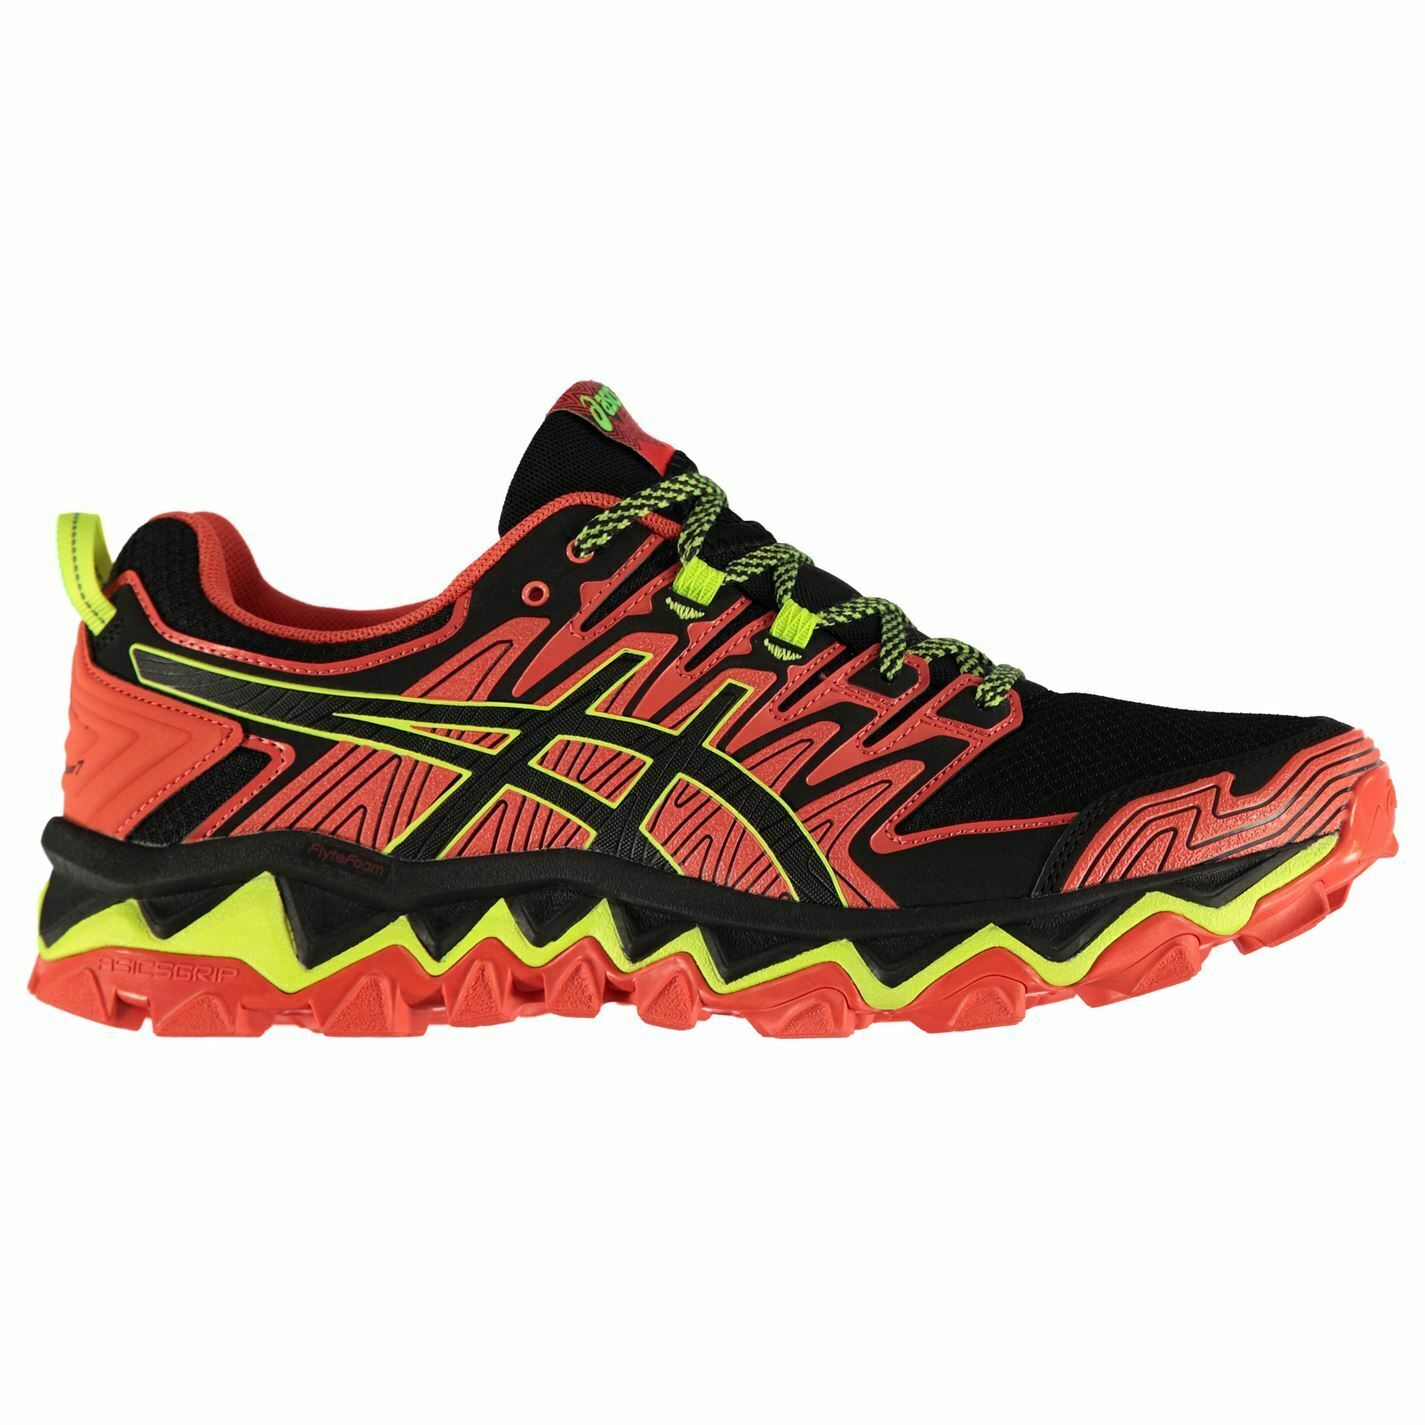 Asics Mens Gel Fujitrabuco 7 Running shoes Athletic Trainers Sneakers Sport